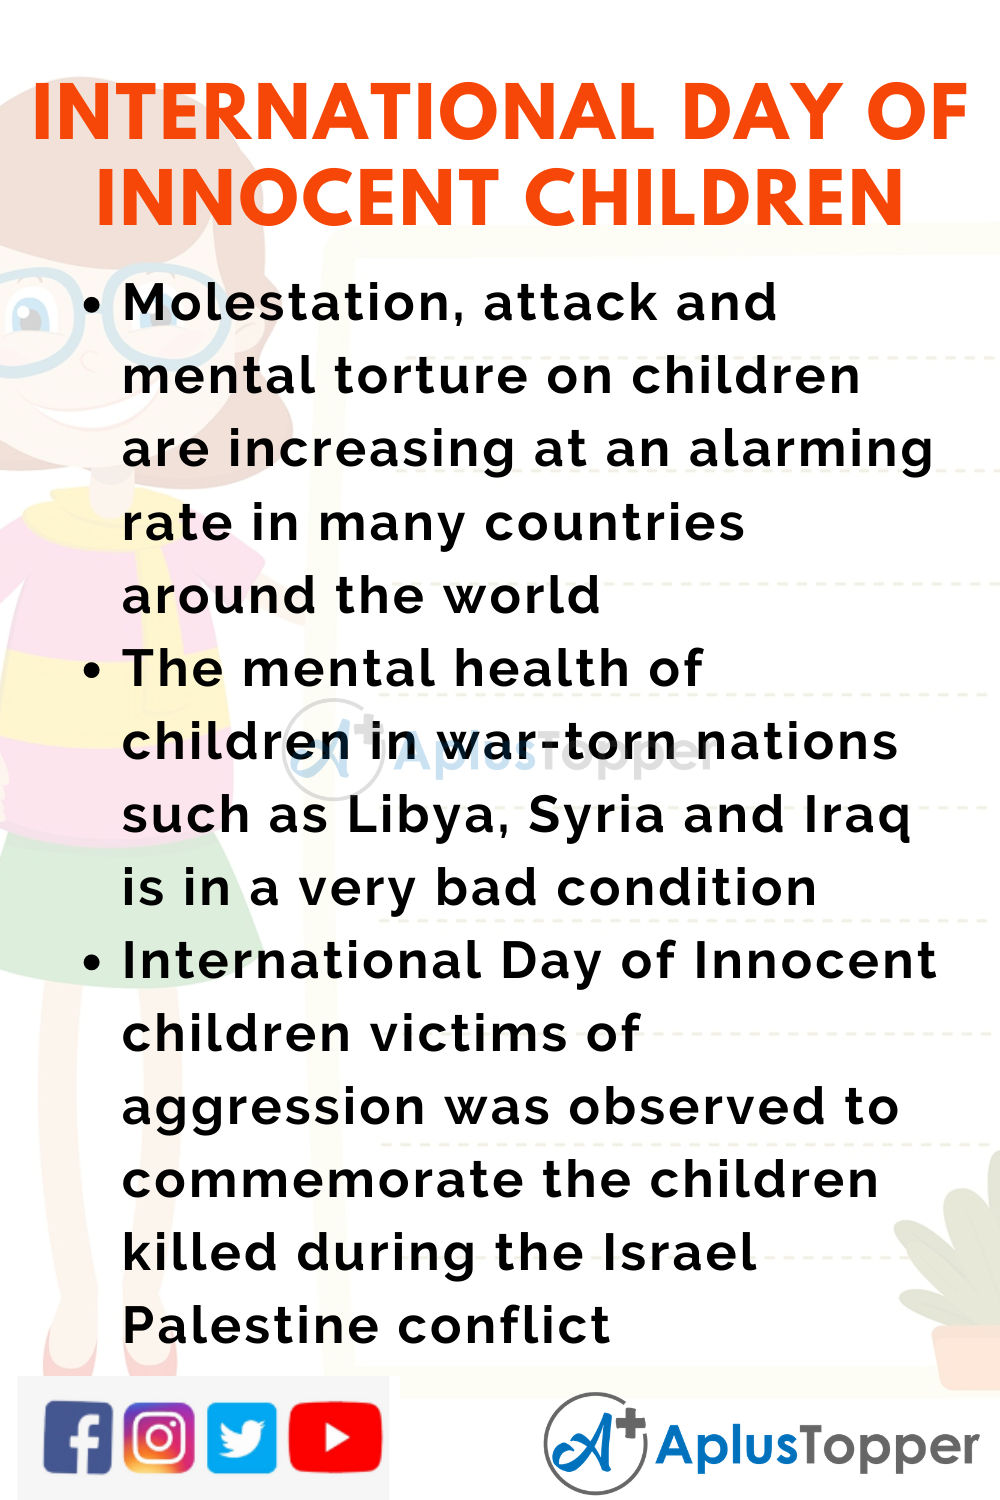 10 Lines On International Day Of Innocent Children Victims Of Aggression for Kids